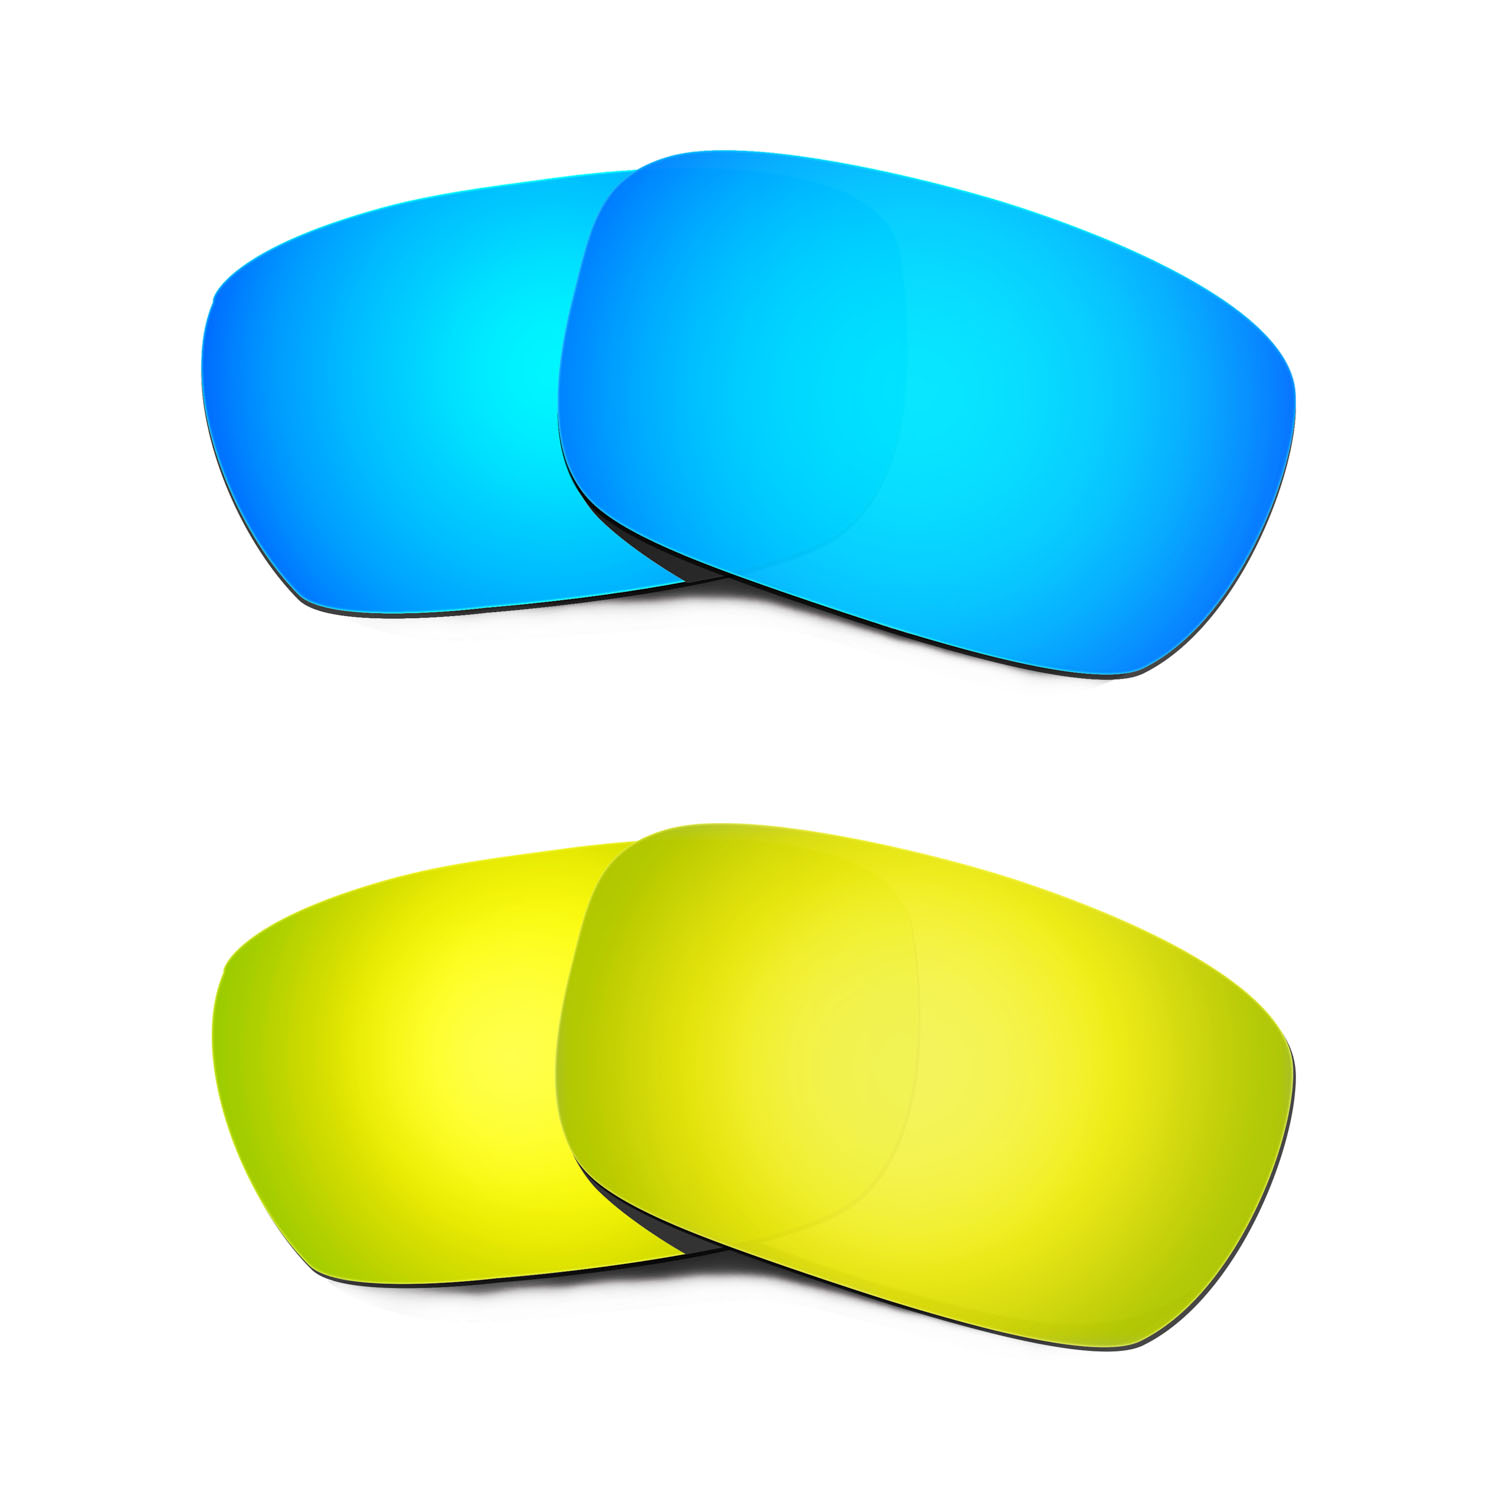 Hkuco For Jury Sunglasses Polarized Replacement Lenses 2 Pairs - Blue&Gold